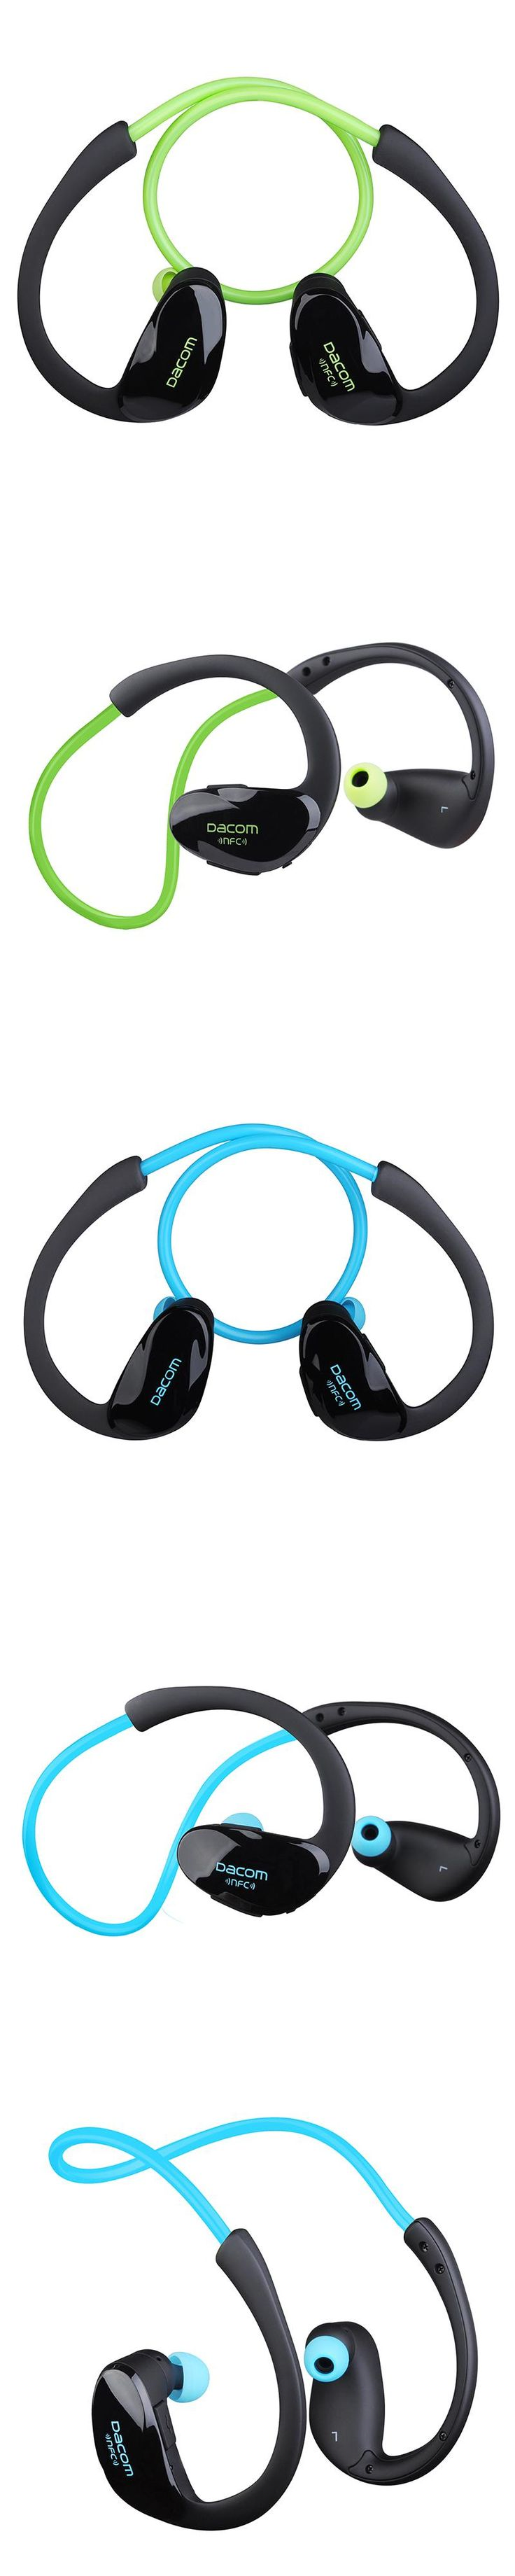 Over ear earbuds waterproof - beats over the ear earbuds